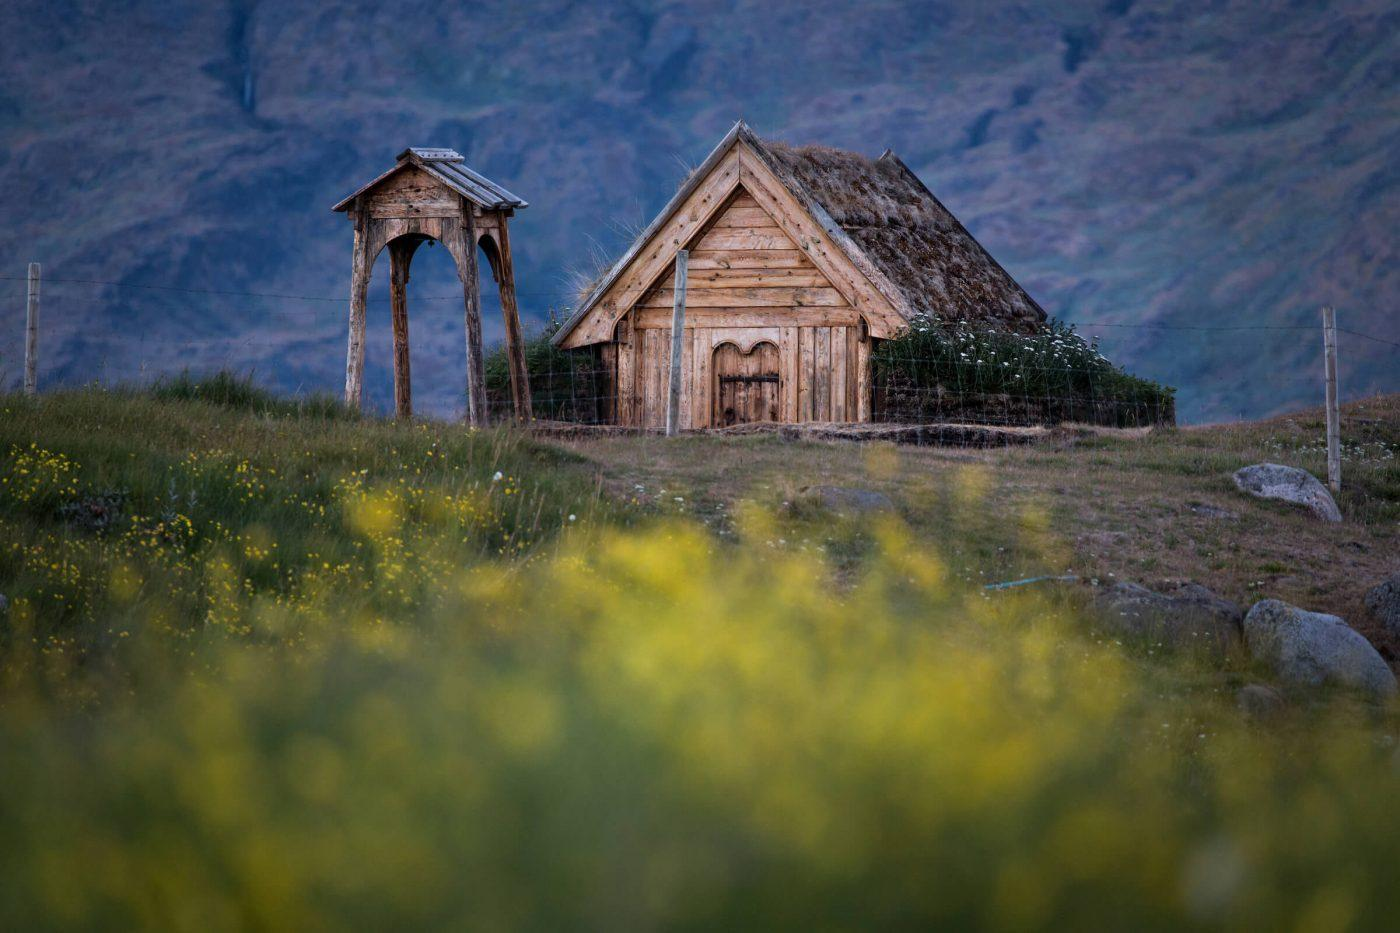 Tjodhilde's Church at the norse reconstruction site in Qassiarsuk in South Greenland. By Mads Pihl